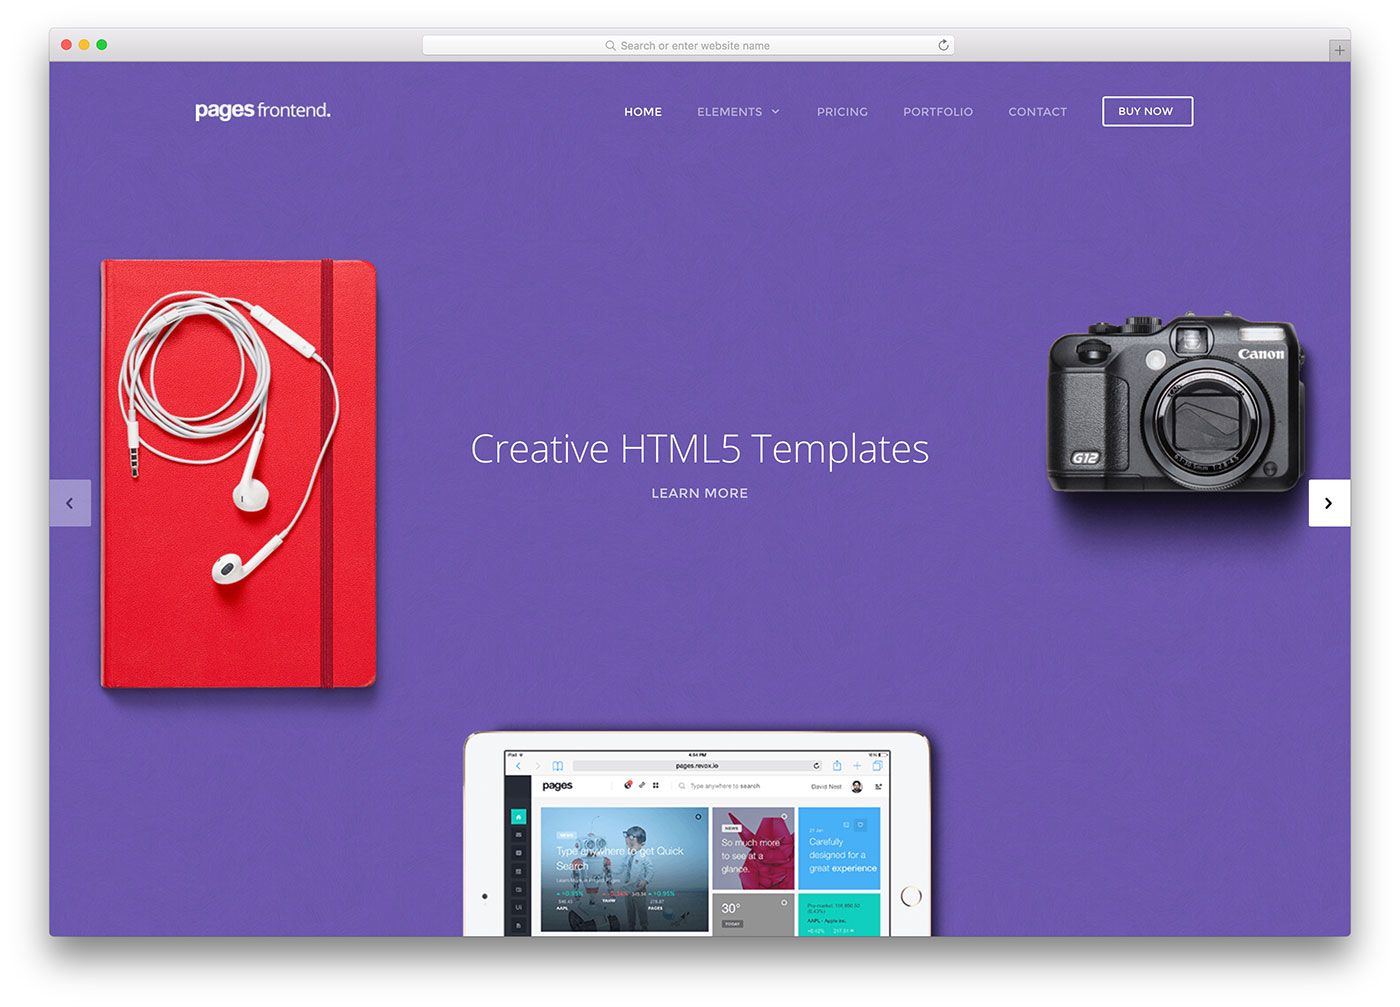 36 creative html5css3 website templates to create unique websites 2018